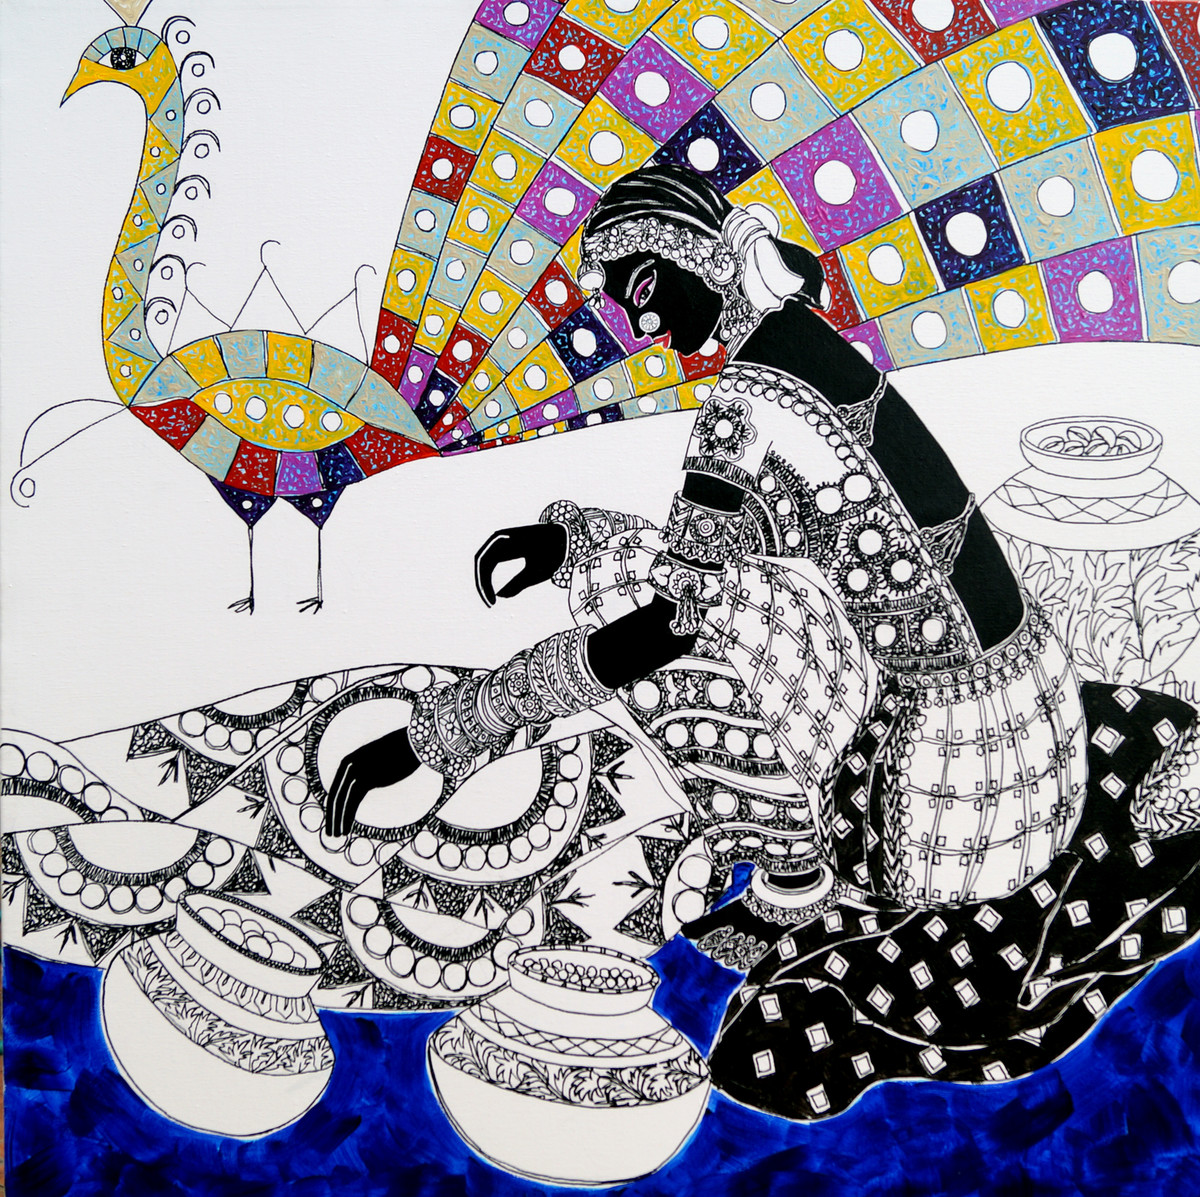 Ethnic Serendipity 55 by Anuradha Thakur, , , Gray color